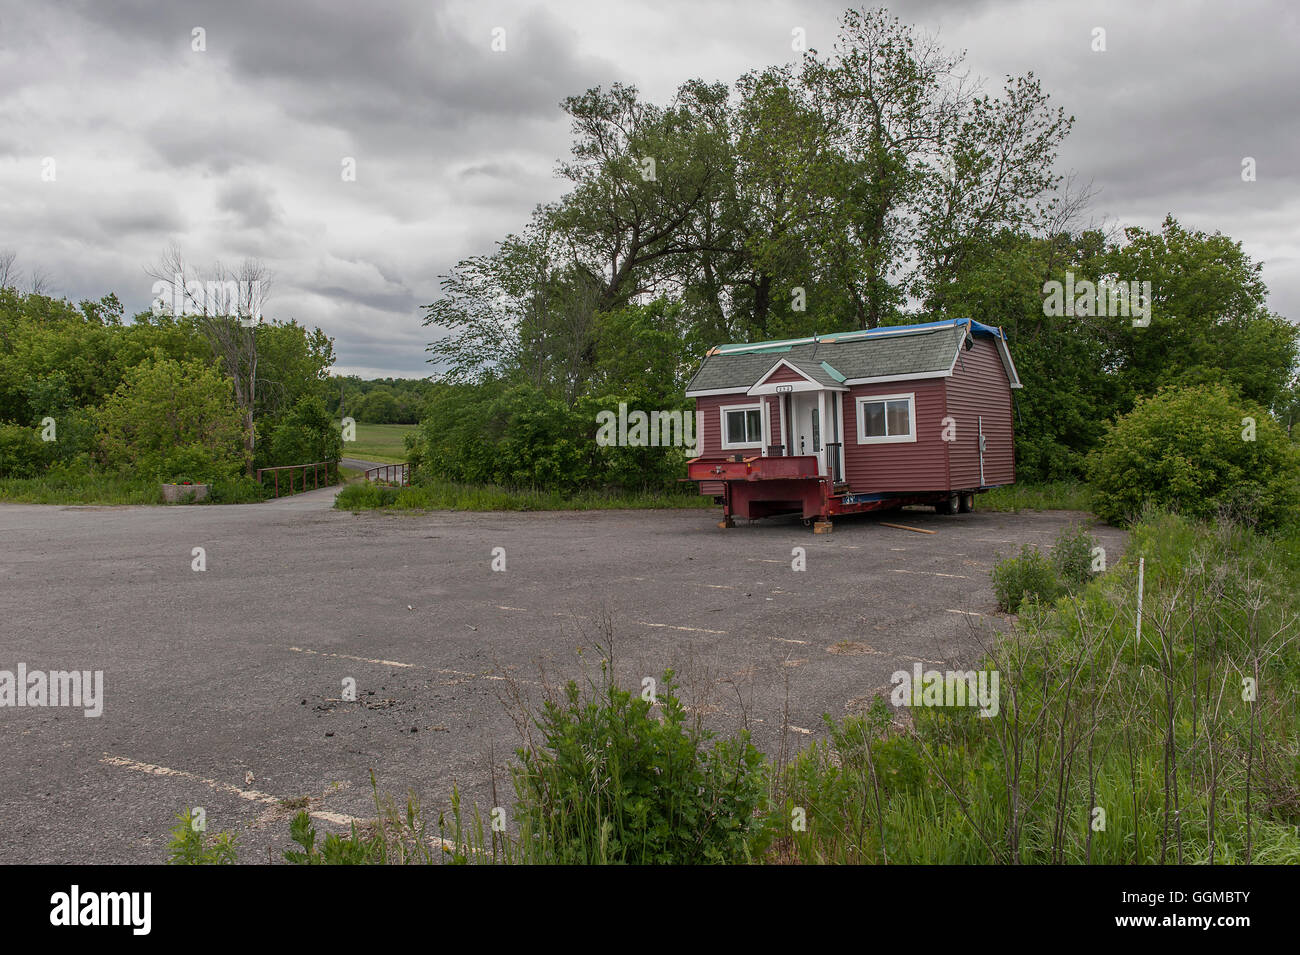 moving trailer house stockfotos moving trailer house bilder alamy. Black Bedroom Furniture Sets. Home Design Ideas